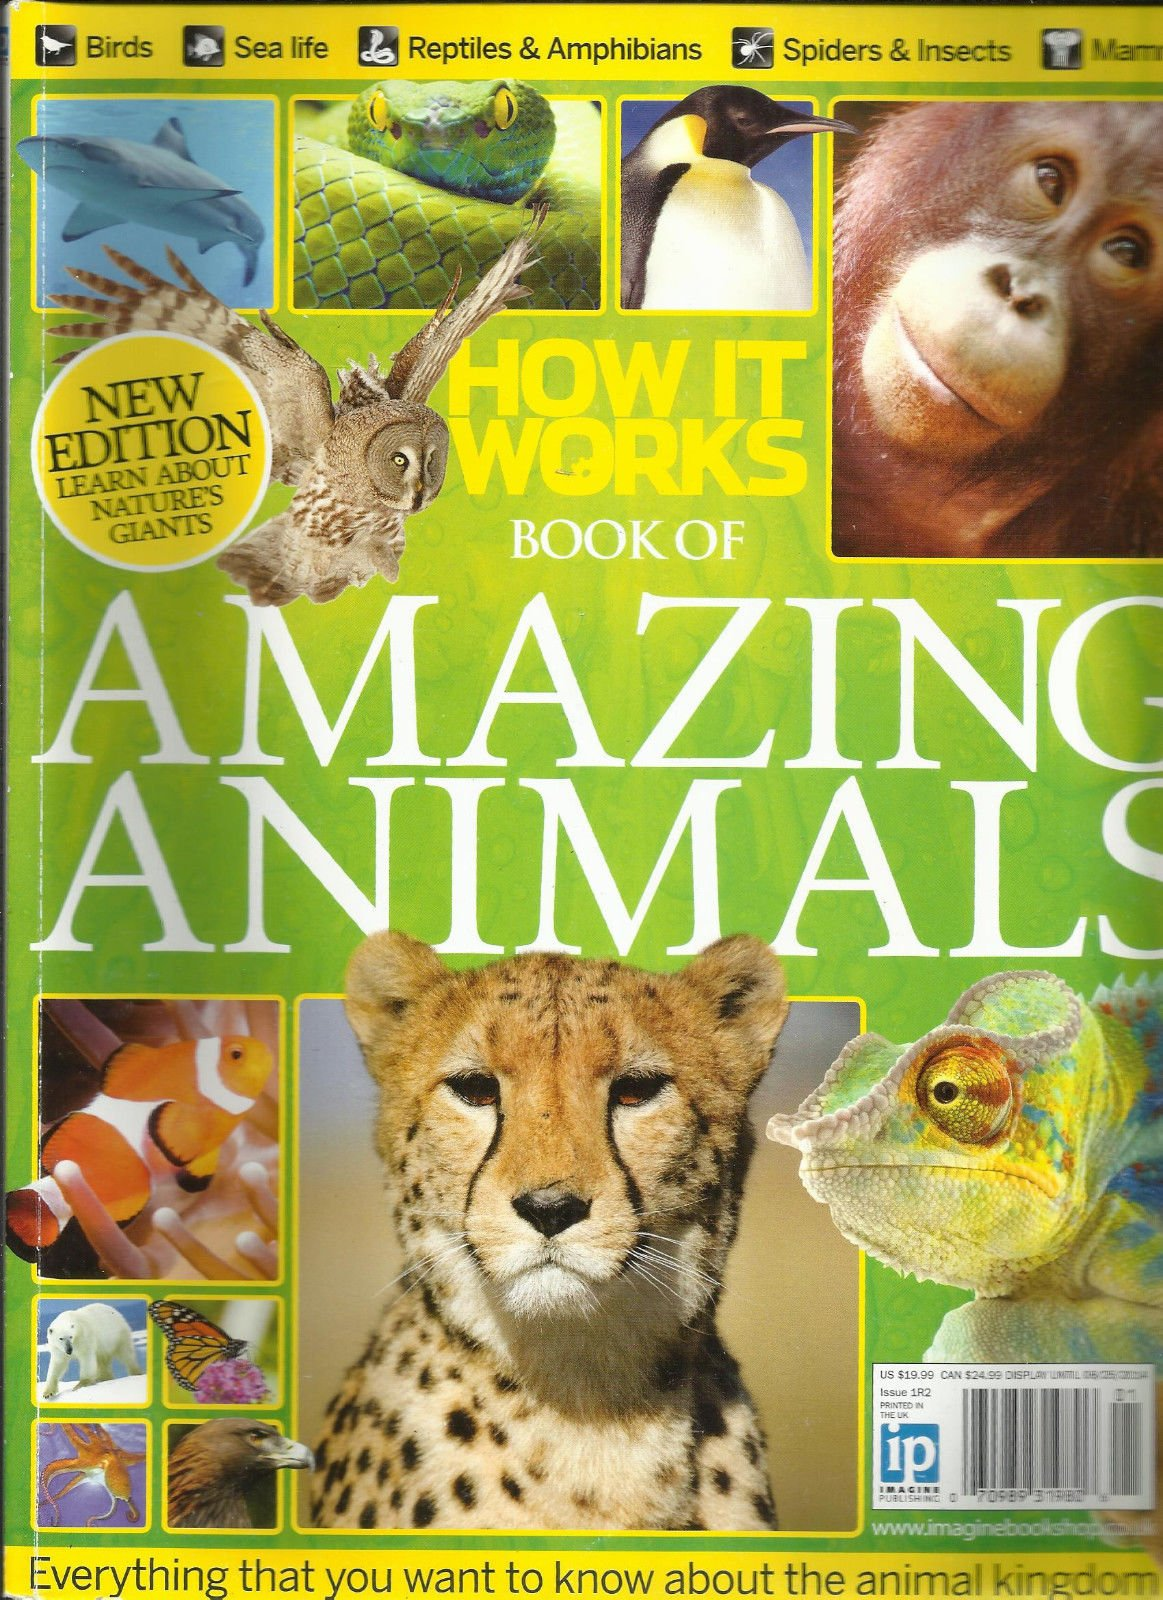 HOW IT WORKS BOOK OF AMAZING ANIMALS ISSUE, 2014 ISSUE, 1R2 NEW EDITION